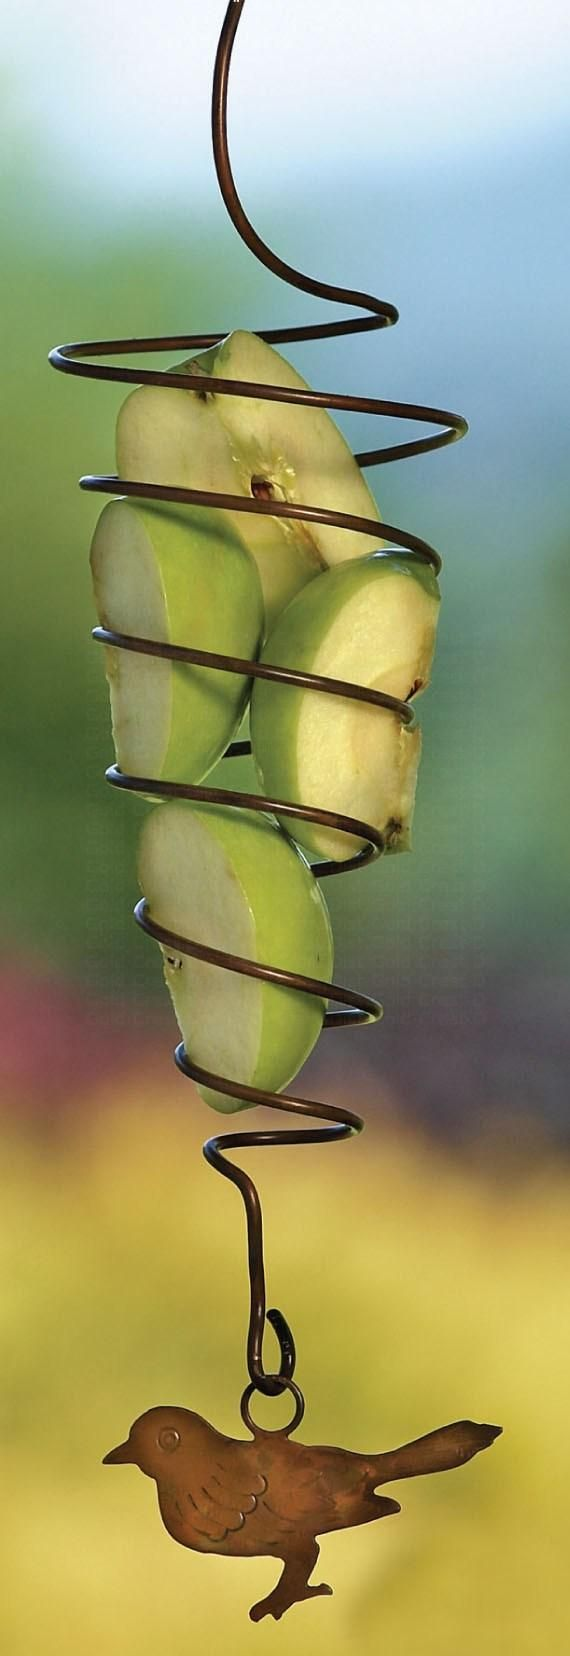 Ancient Graffiti Spiral Fruit Spear Bird, $13.50.  How cute is this fruit bird feeder!  It will attract fruit eating birds!  Great gift!  See details and more..  www.chimesin.com  Bird Feeders, Garden Decor, Garden Gifts, Gifts, Outdoor, Garden, Outdoor Gifts